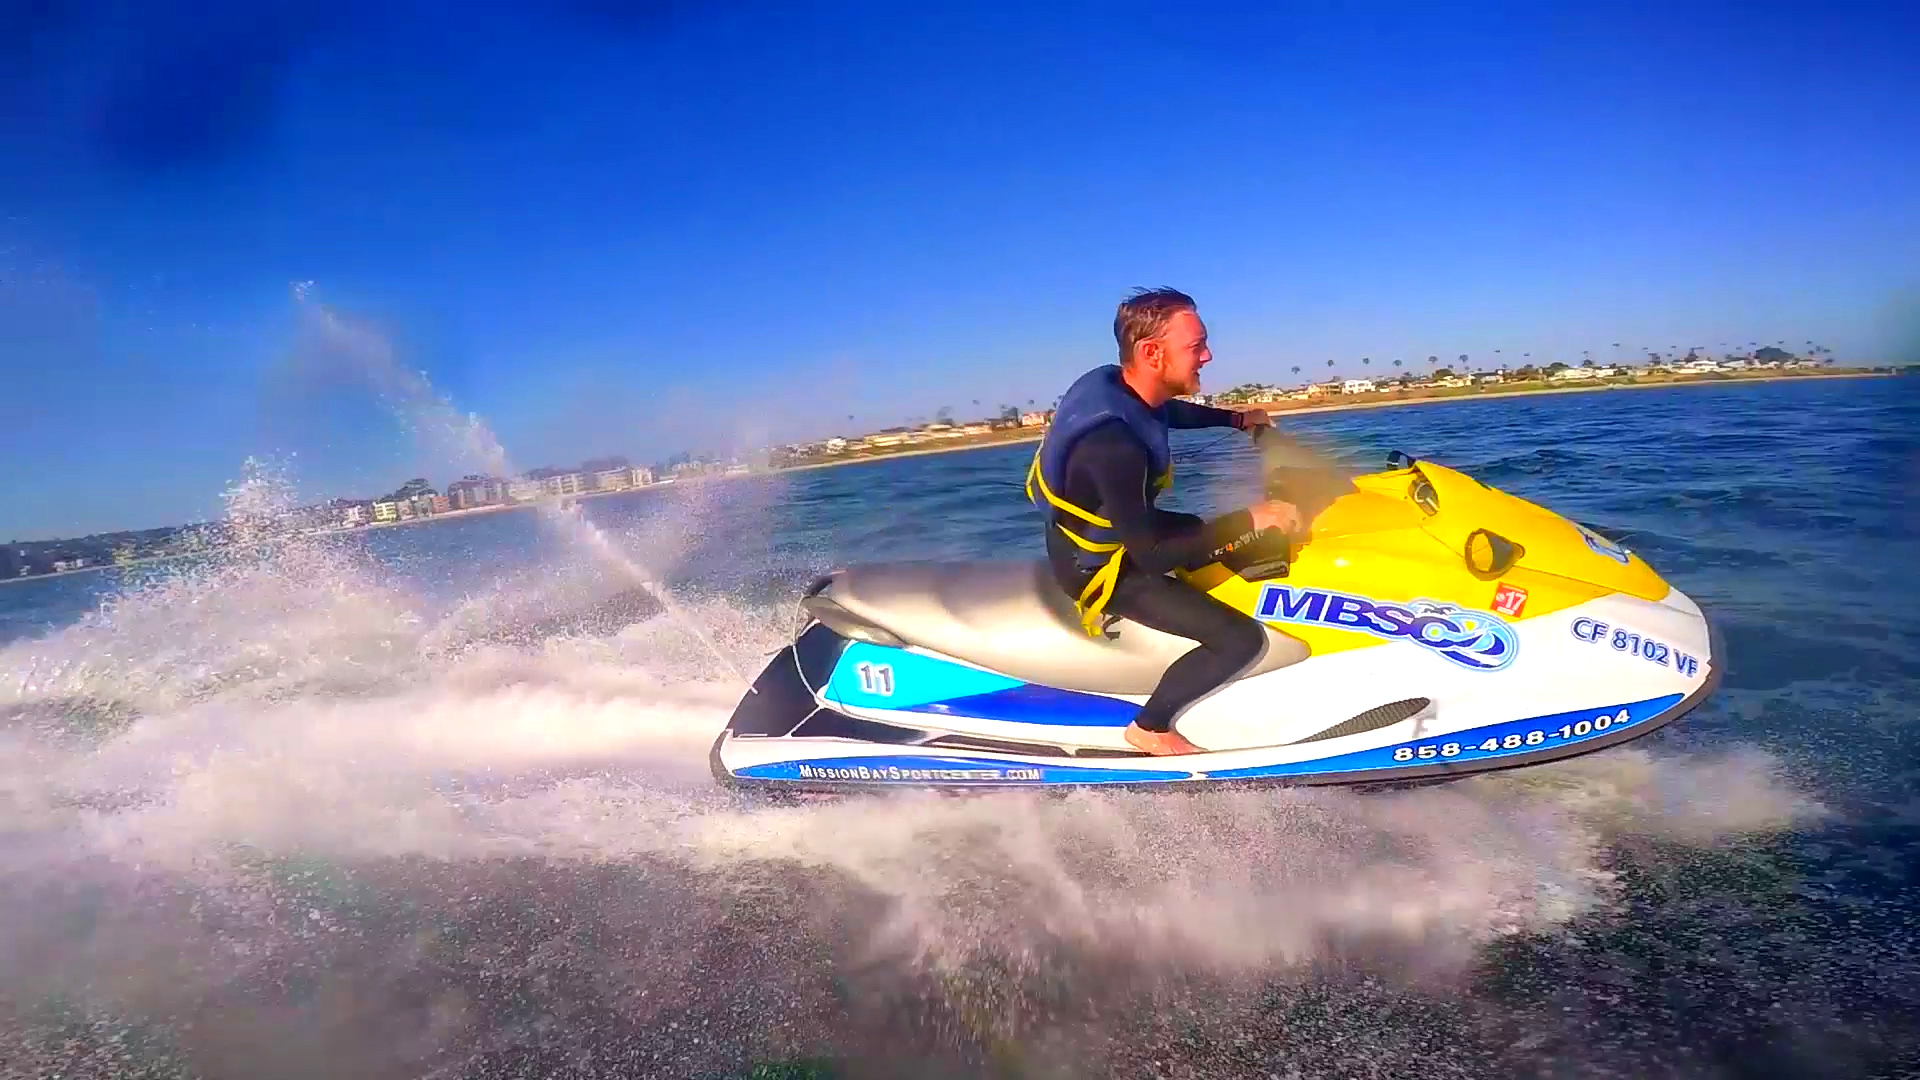 Top 5 Water Sports | Jet Skiing